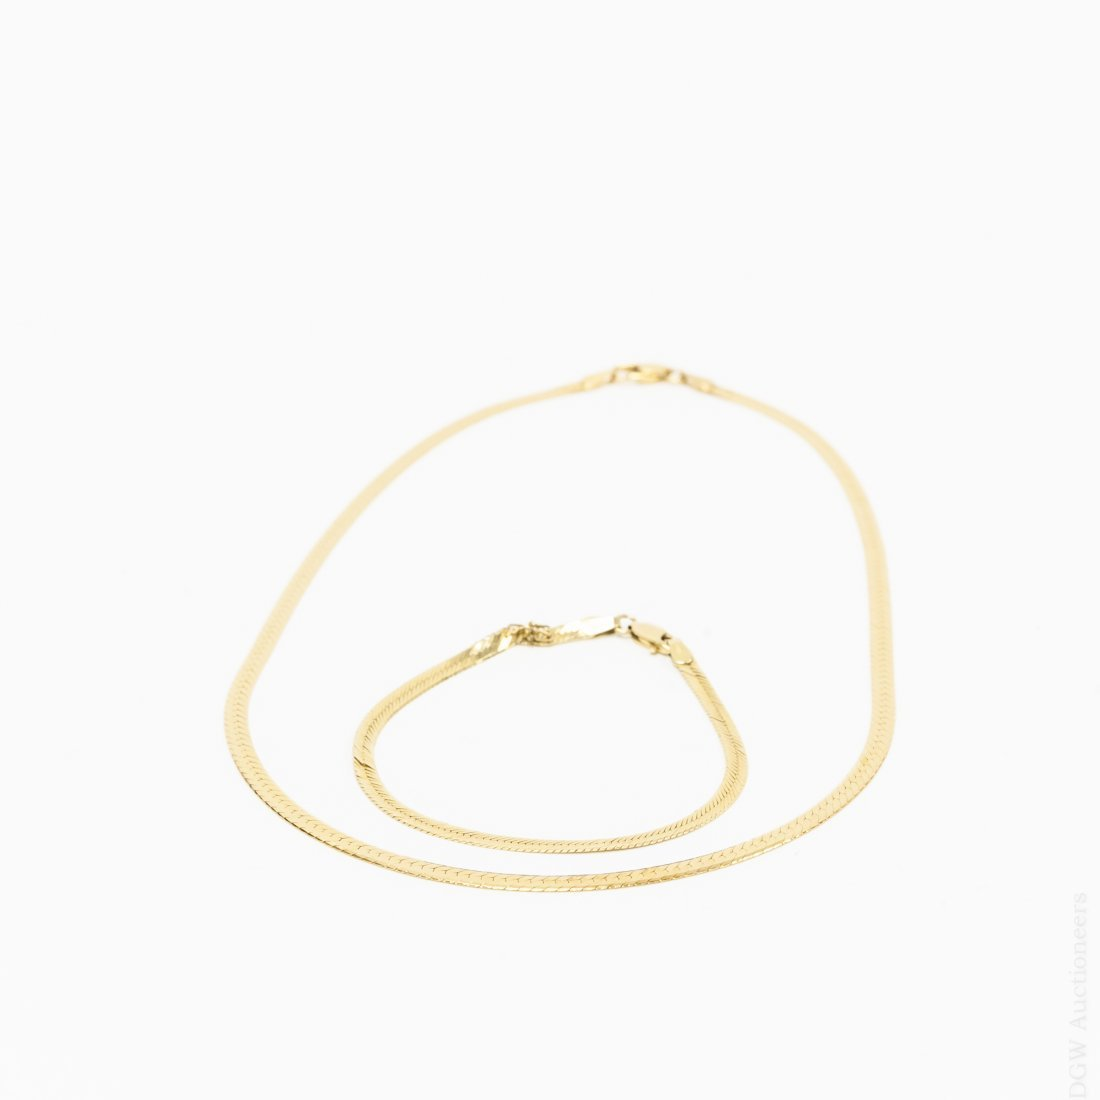 18K Yellow Gold Necklace and Bracelet.